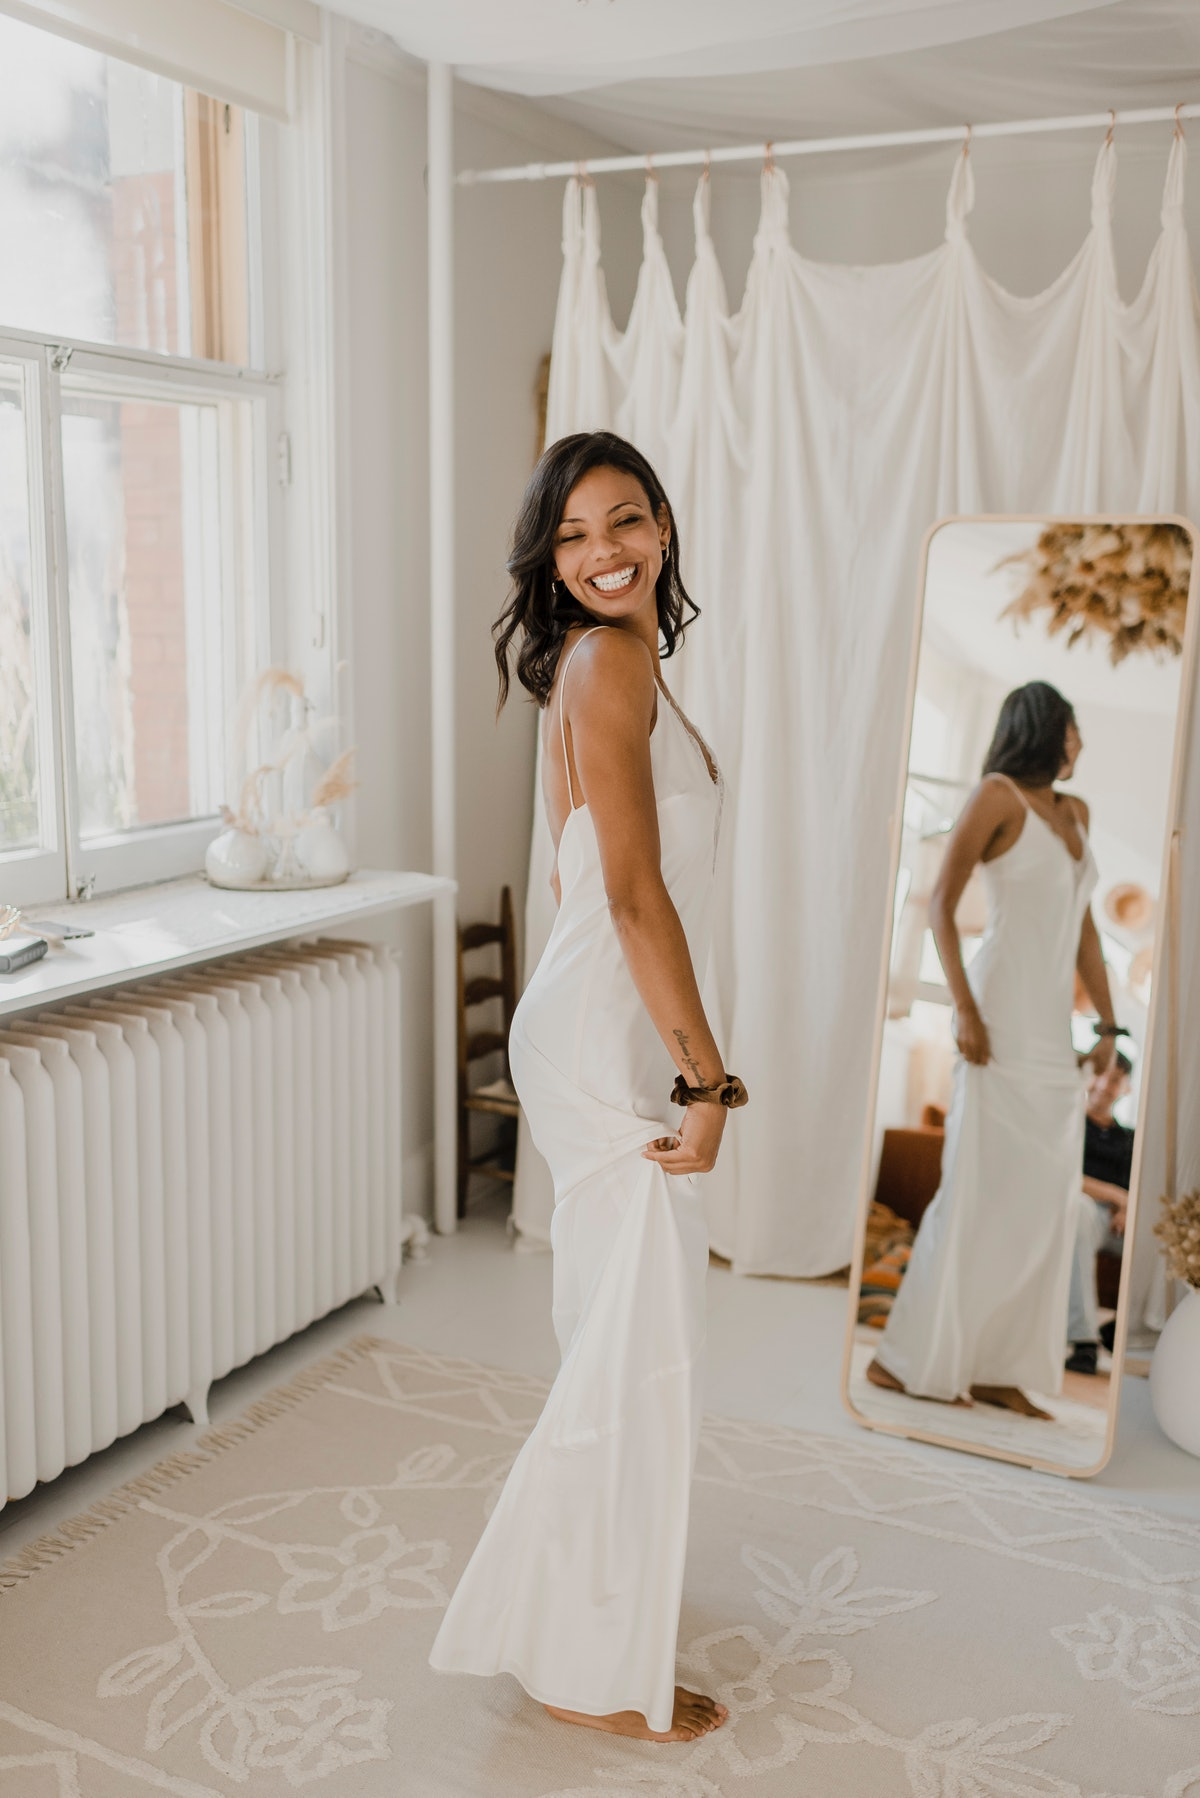 A bride smiles after saying yes to the dress, and standing in the view of a full-length mirror.